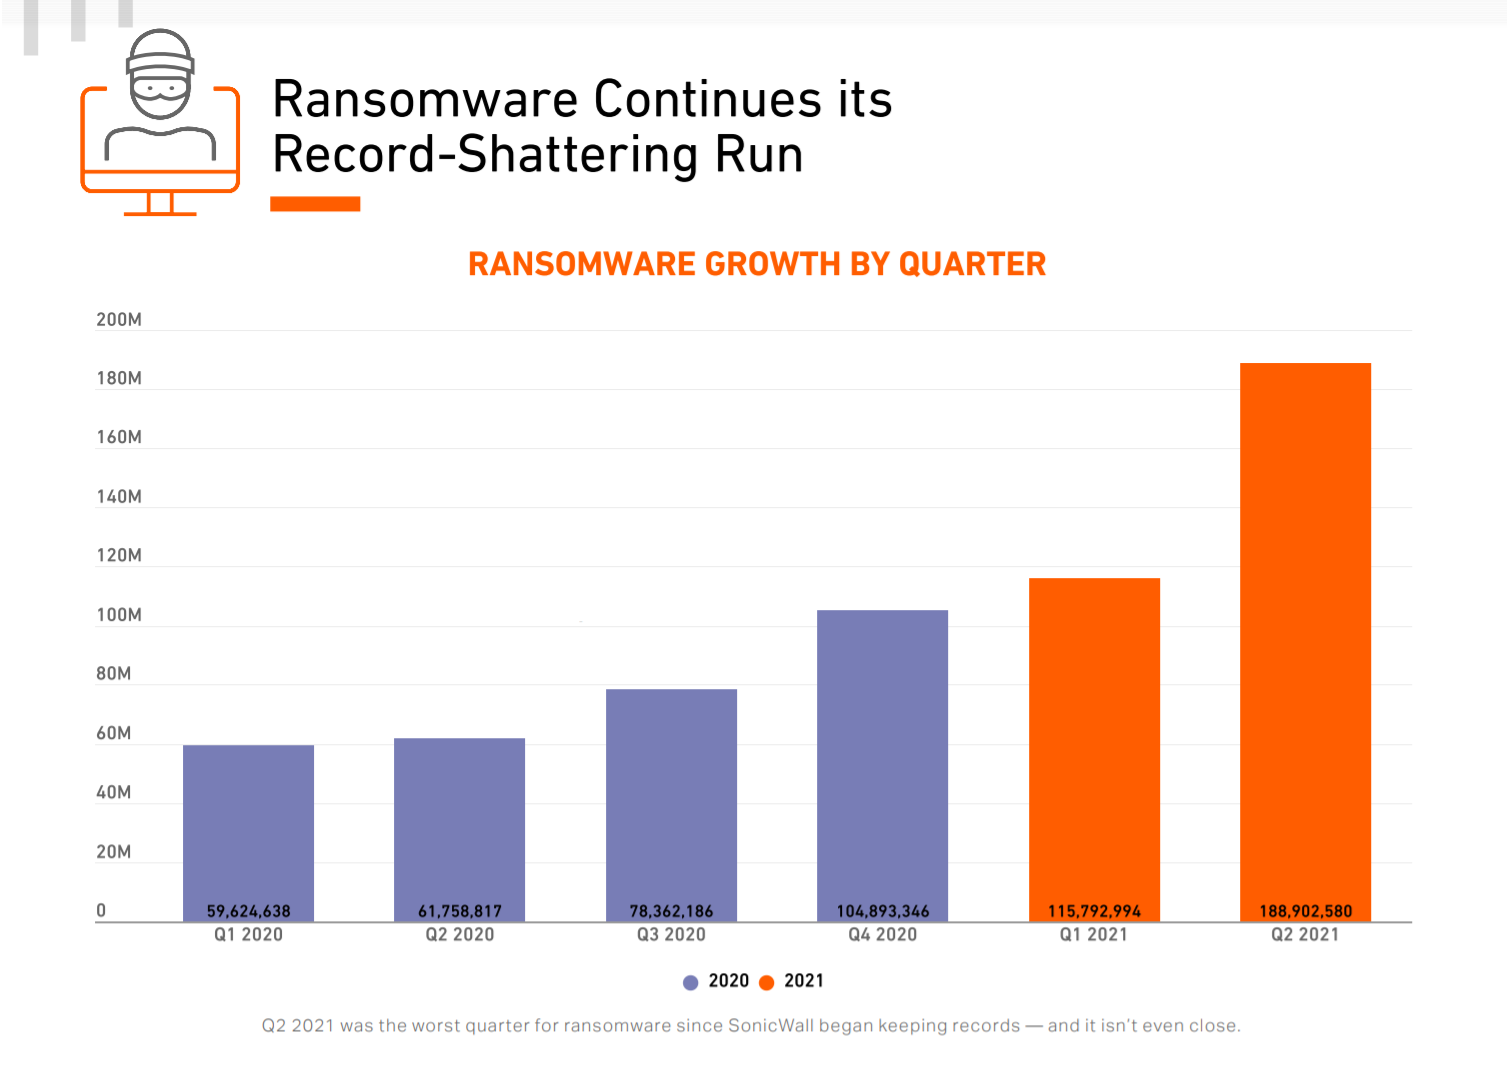 Ransomware Continues its Record-Shattering Run